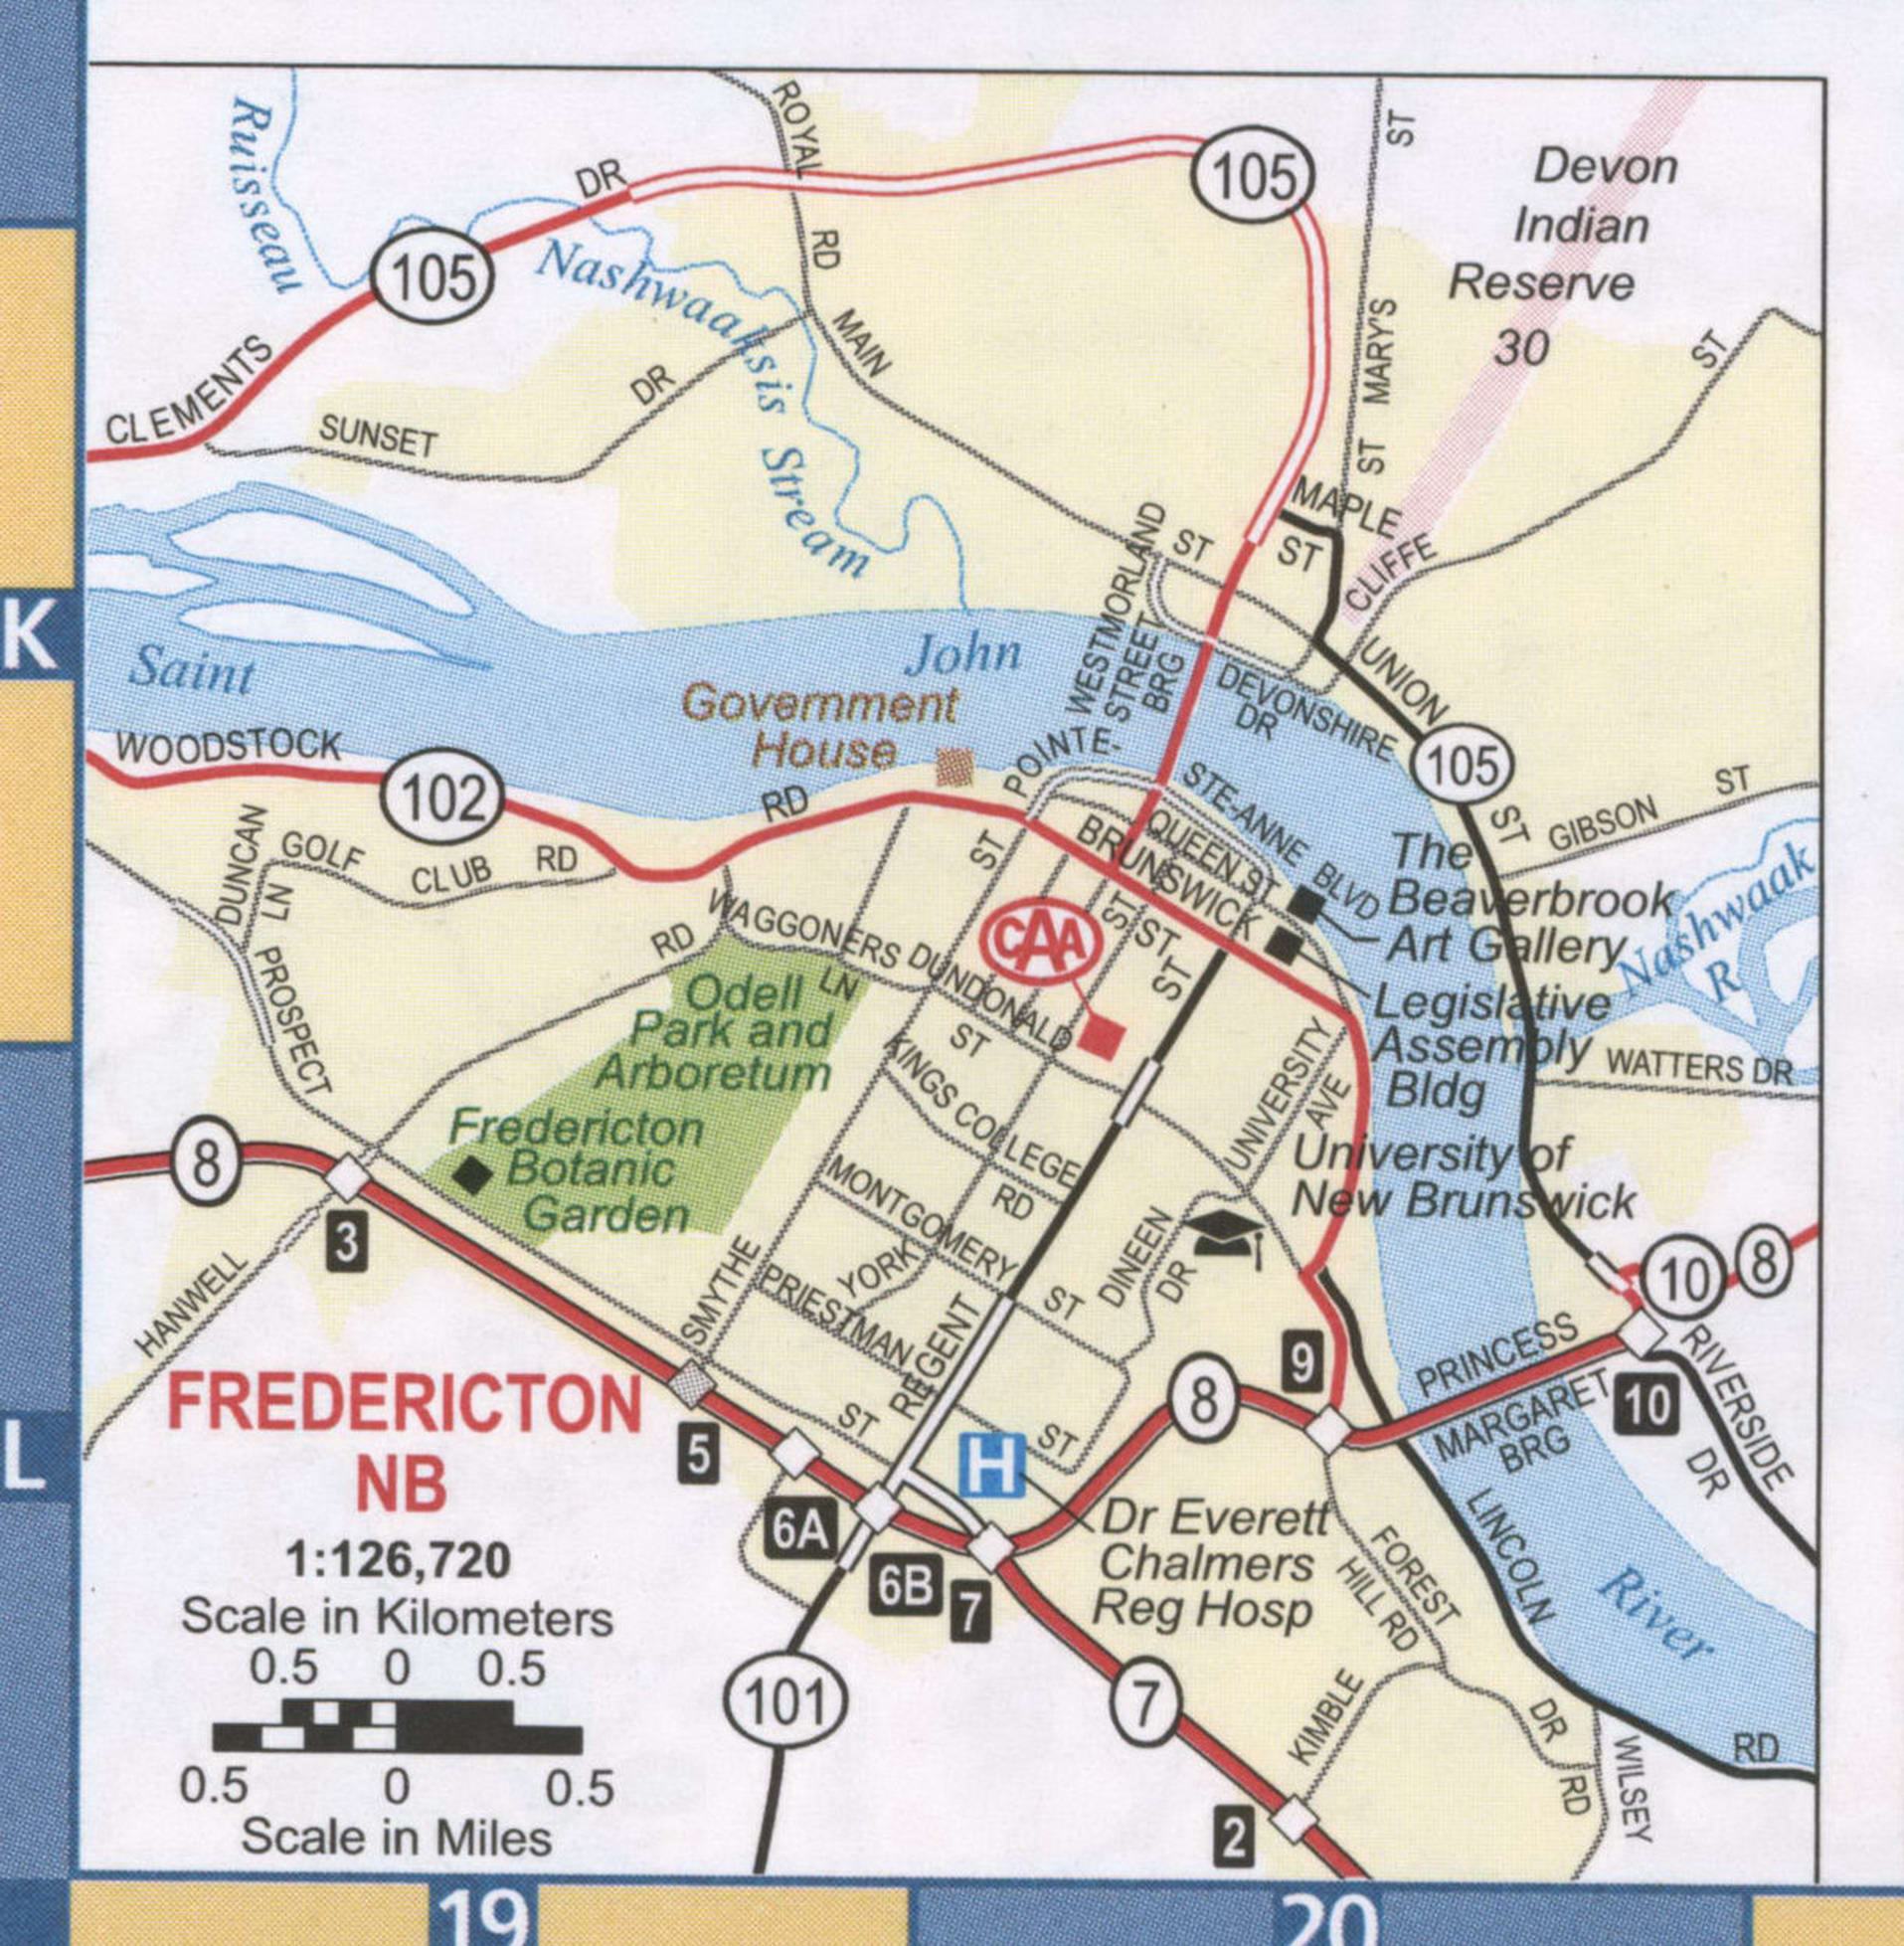 Fredericton NB road map